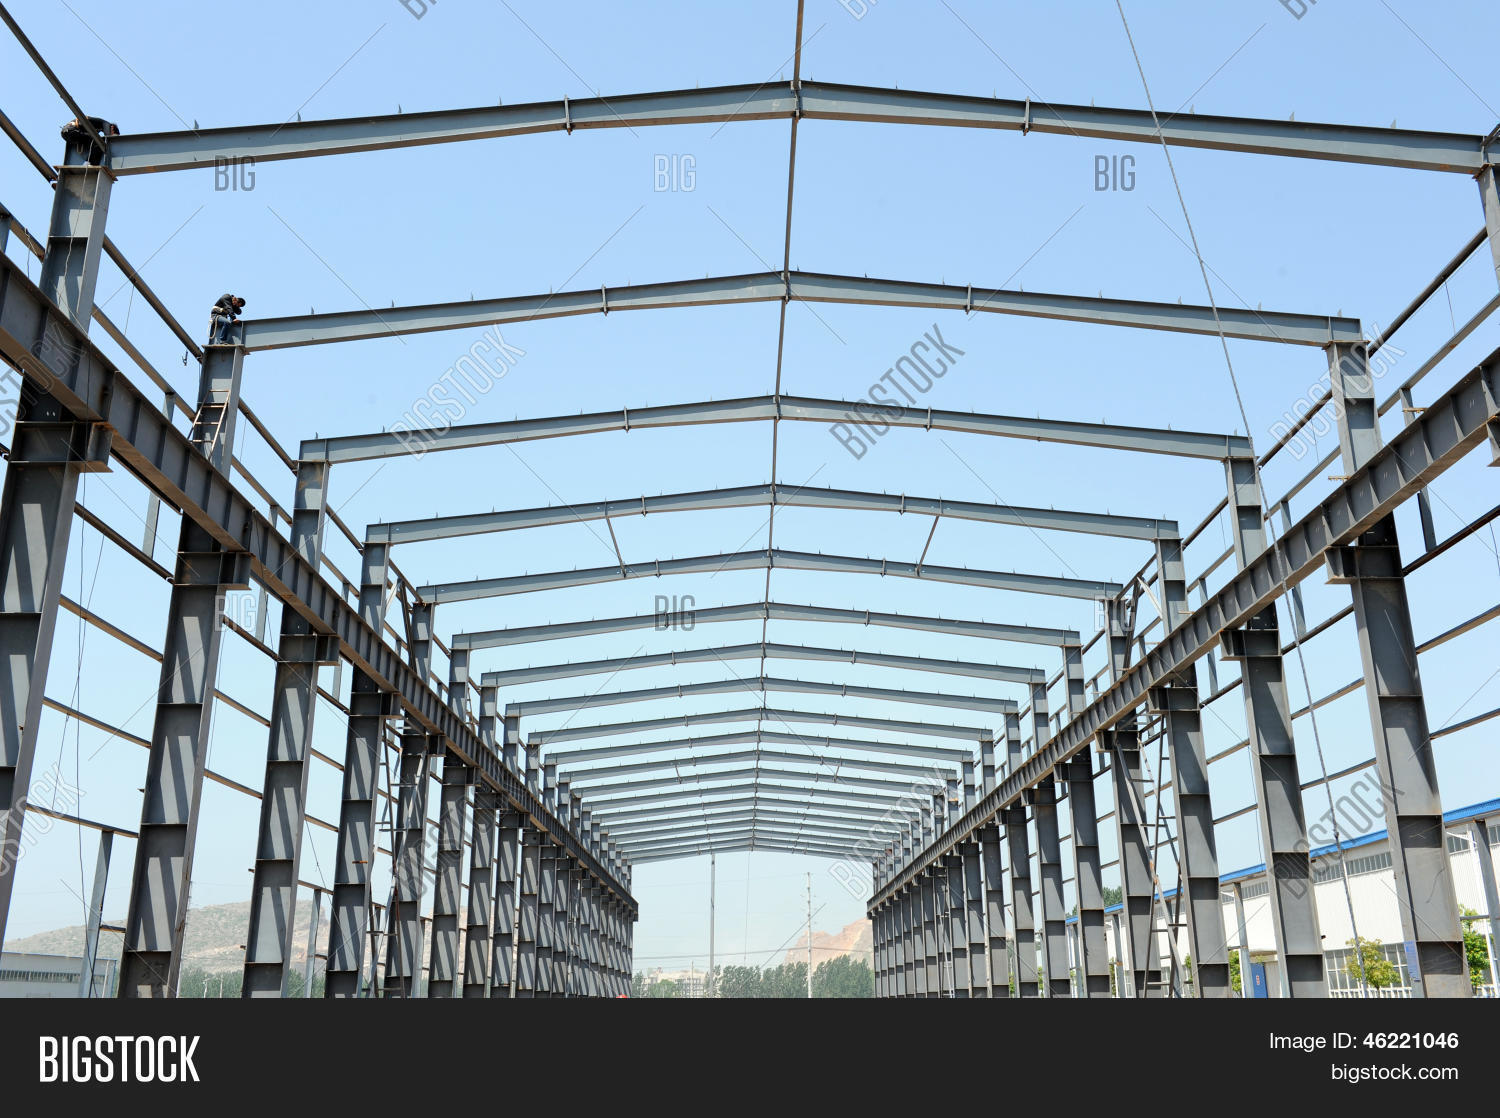 Steel frame structure building image photo bigstock for Aussteifung stahlbau